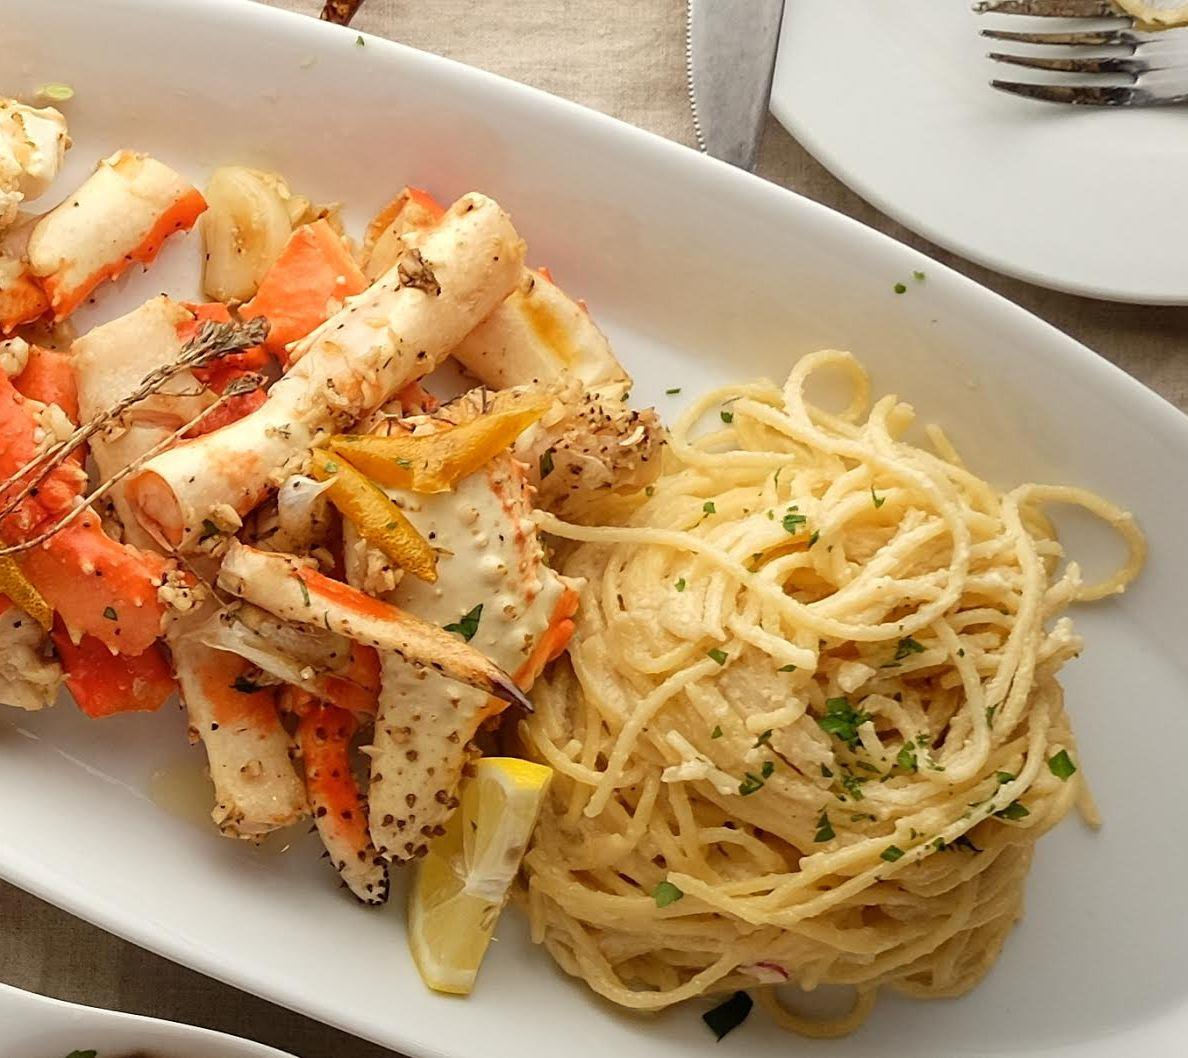 Roasted King Crab Legs